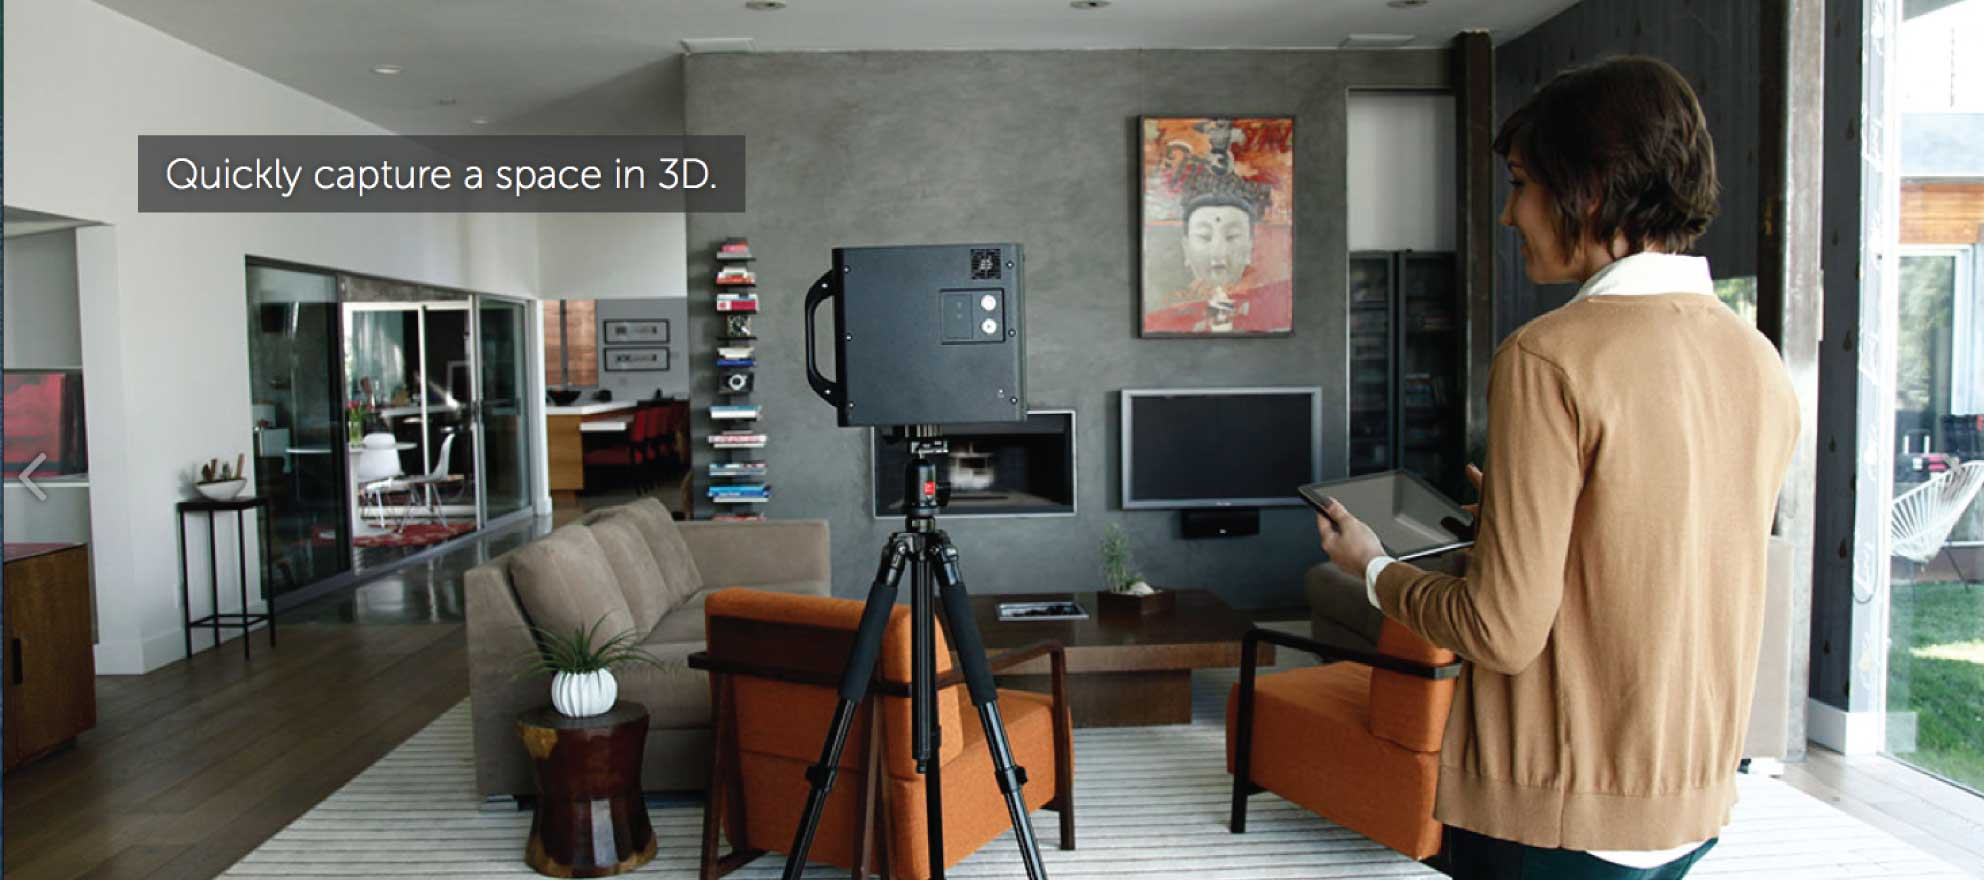 It's happened: Zillow now serving up 3-D models on listings